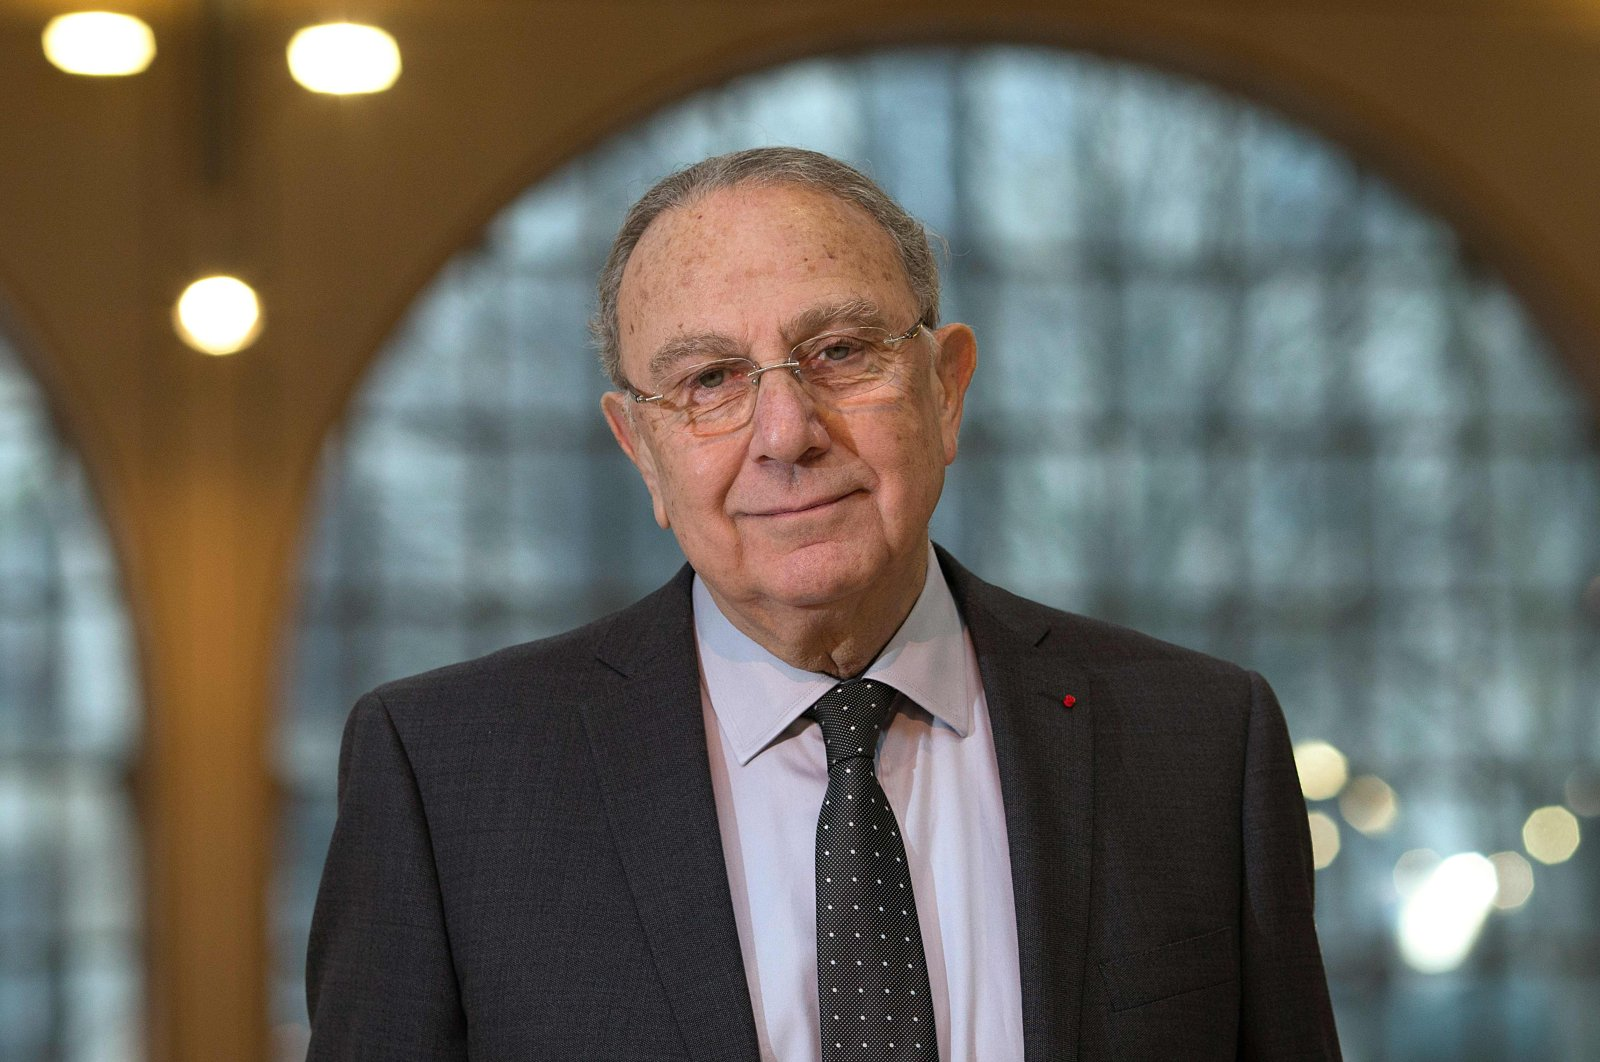 Socialist Mayor of the 3rd arrondissement of Paris, Pierre Aidenbaum poses inside the Carreau du Temple venue in Paris, Feb. 20, 2014. (AFP Photo)